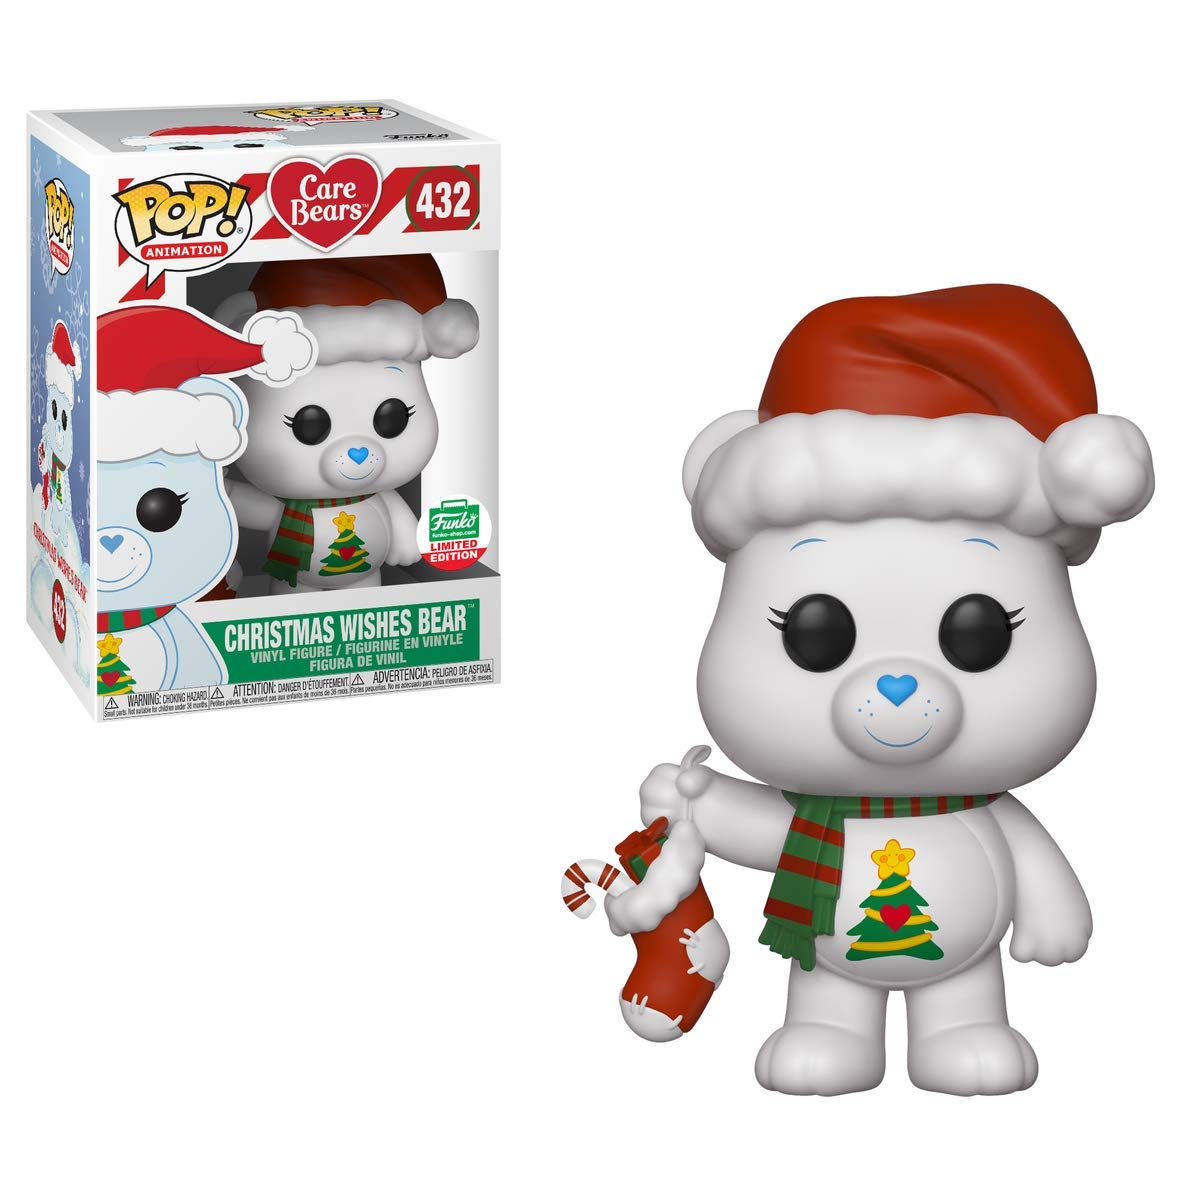 Funko POP  Animation  Care Bears  Christmas Wishes Bear  432 Shop's [2018] 12 Days of Christmas Exclusive